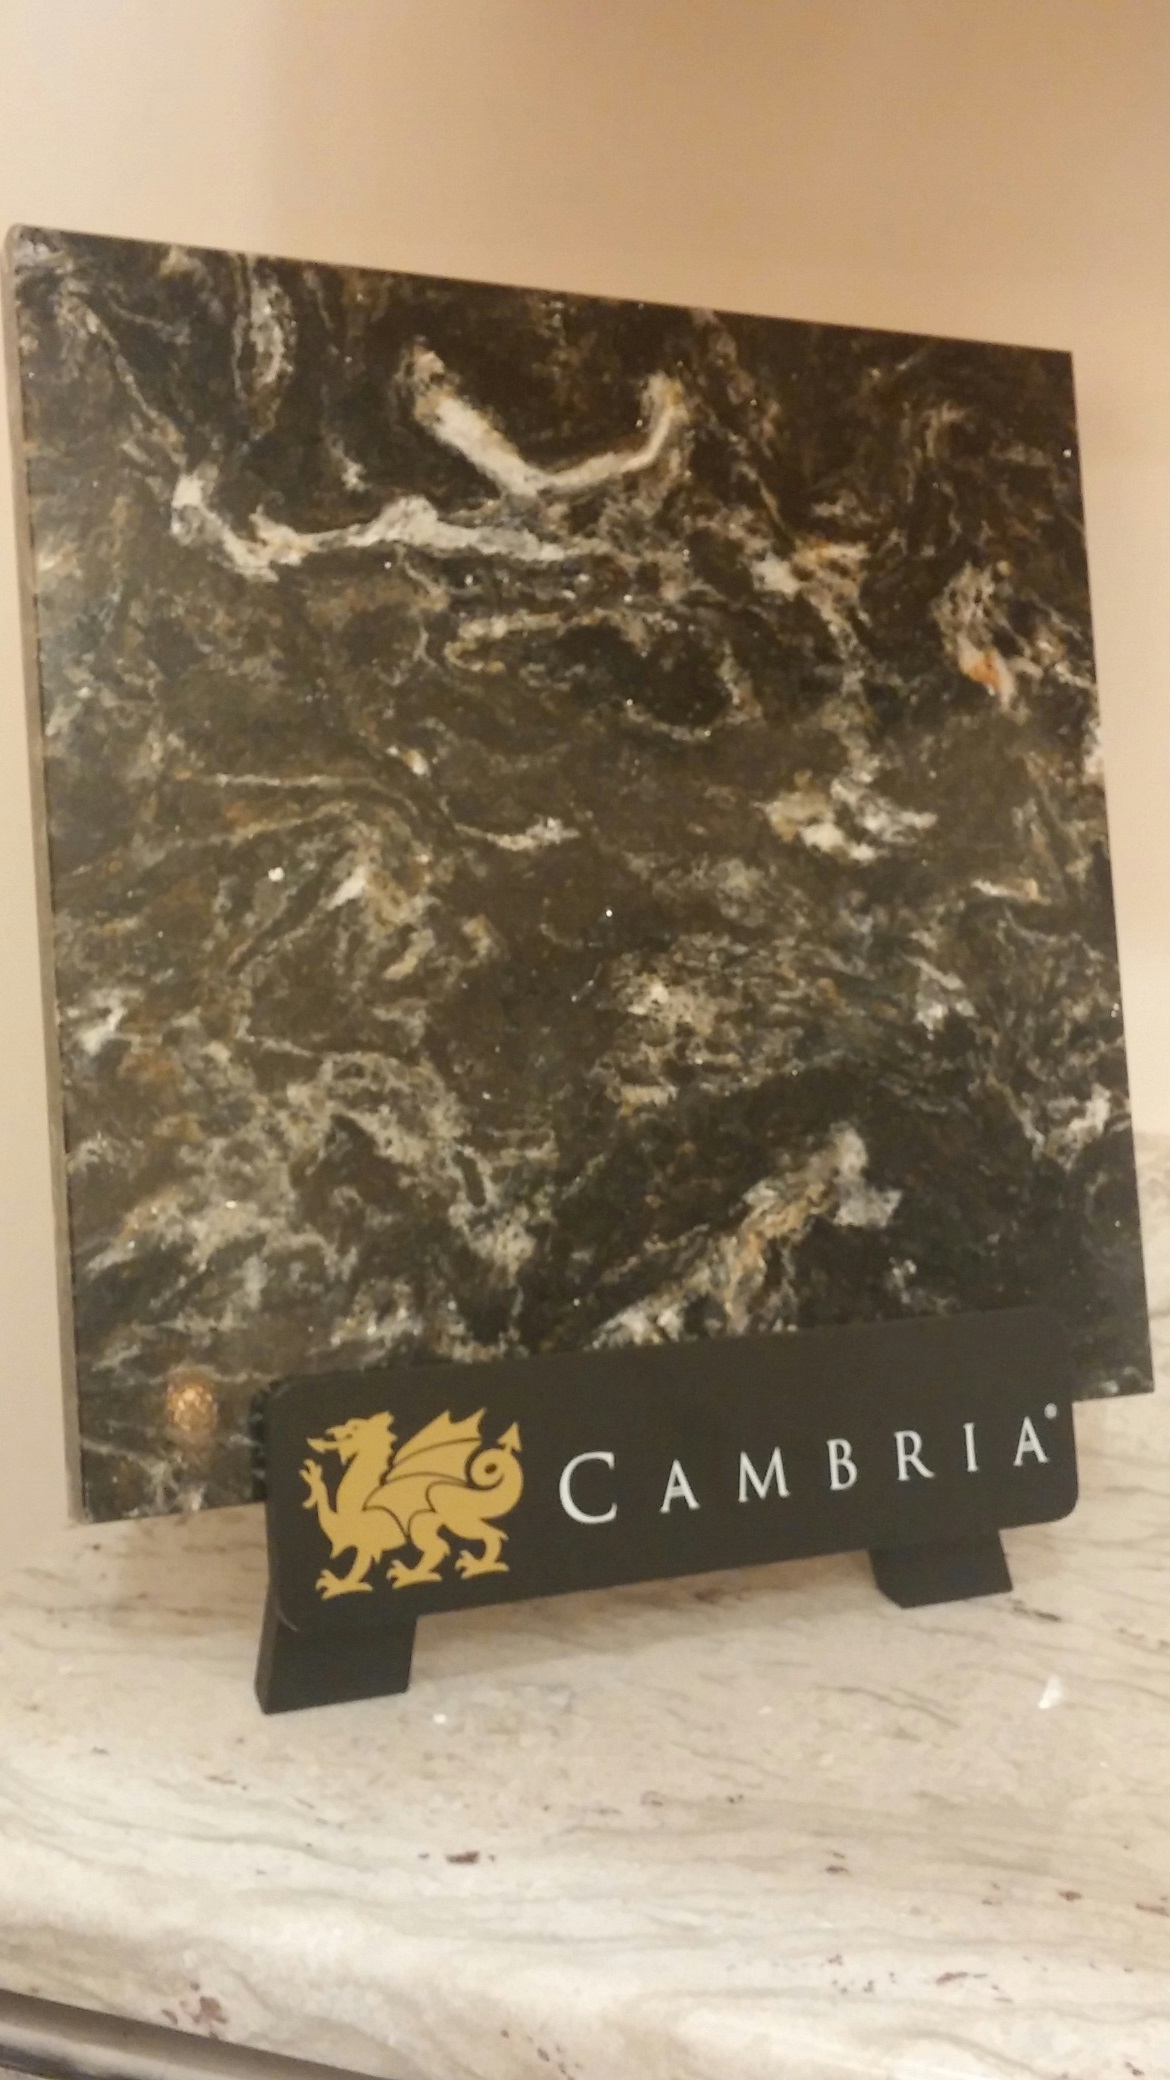 Cambria Quartz doesnt need any sealing and can withstand High temperatures of heat. Great countertop option for commercial spaces as well as residential kitchens.